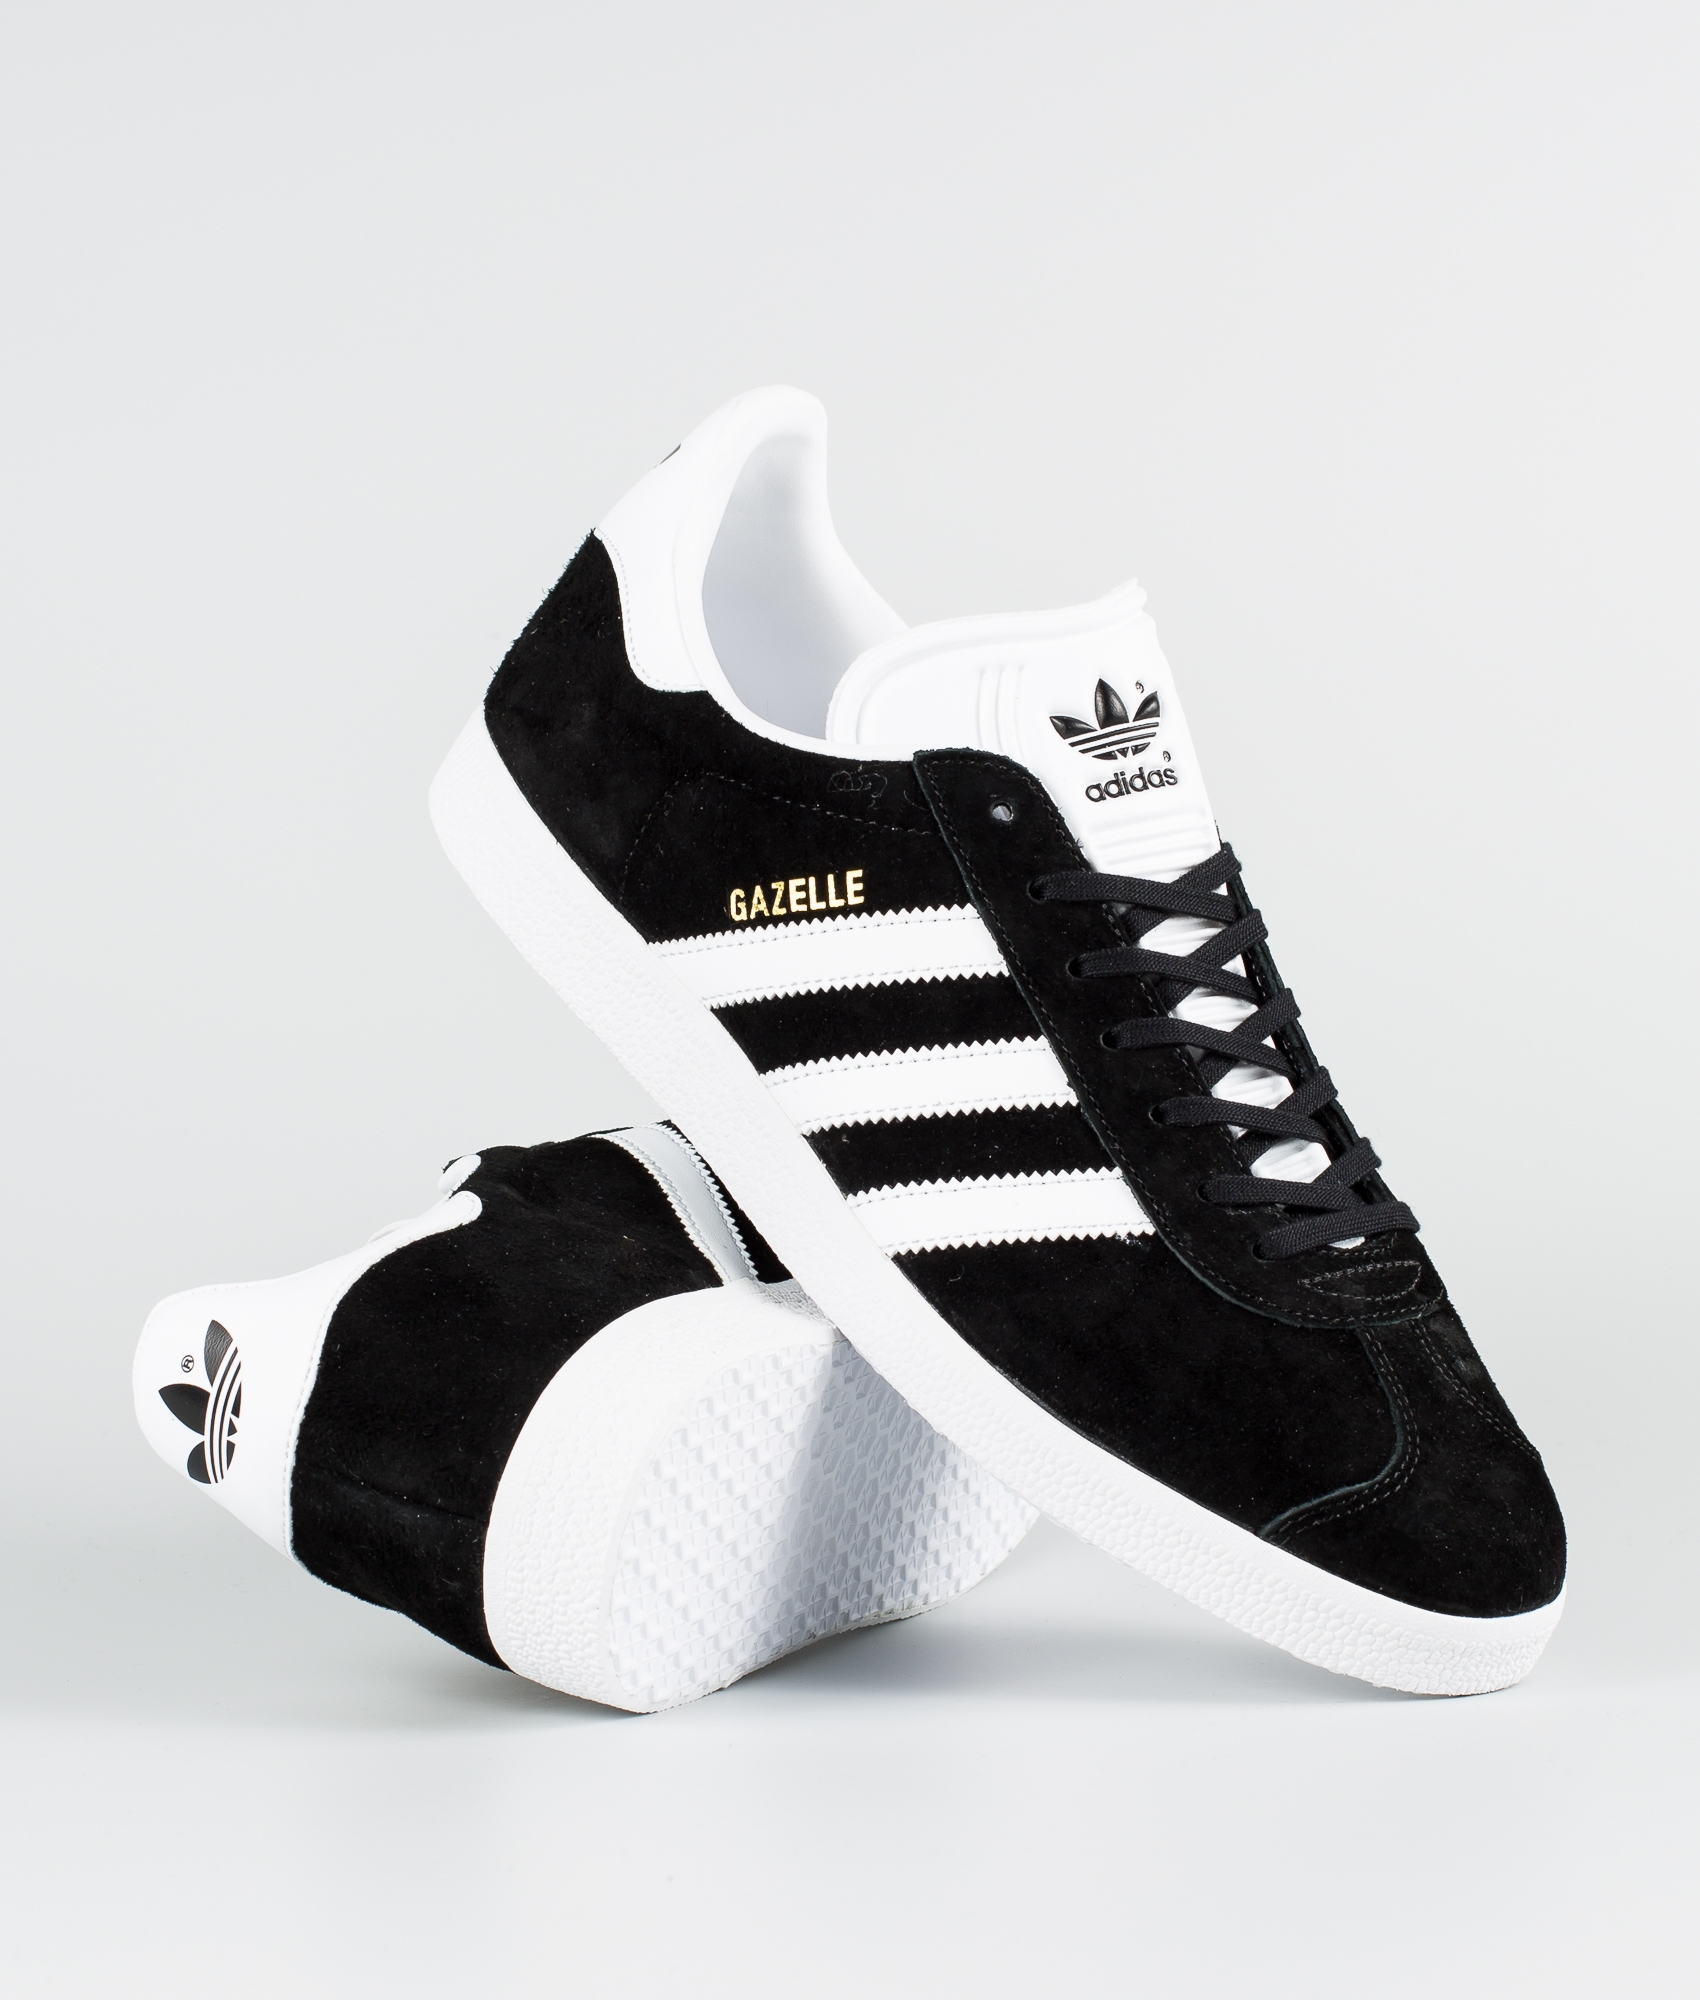 Core Adidas Ridestore Scarpe it Blackwhitegoldmt Originals Gazelle rqxq0wt6